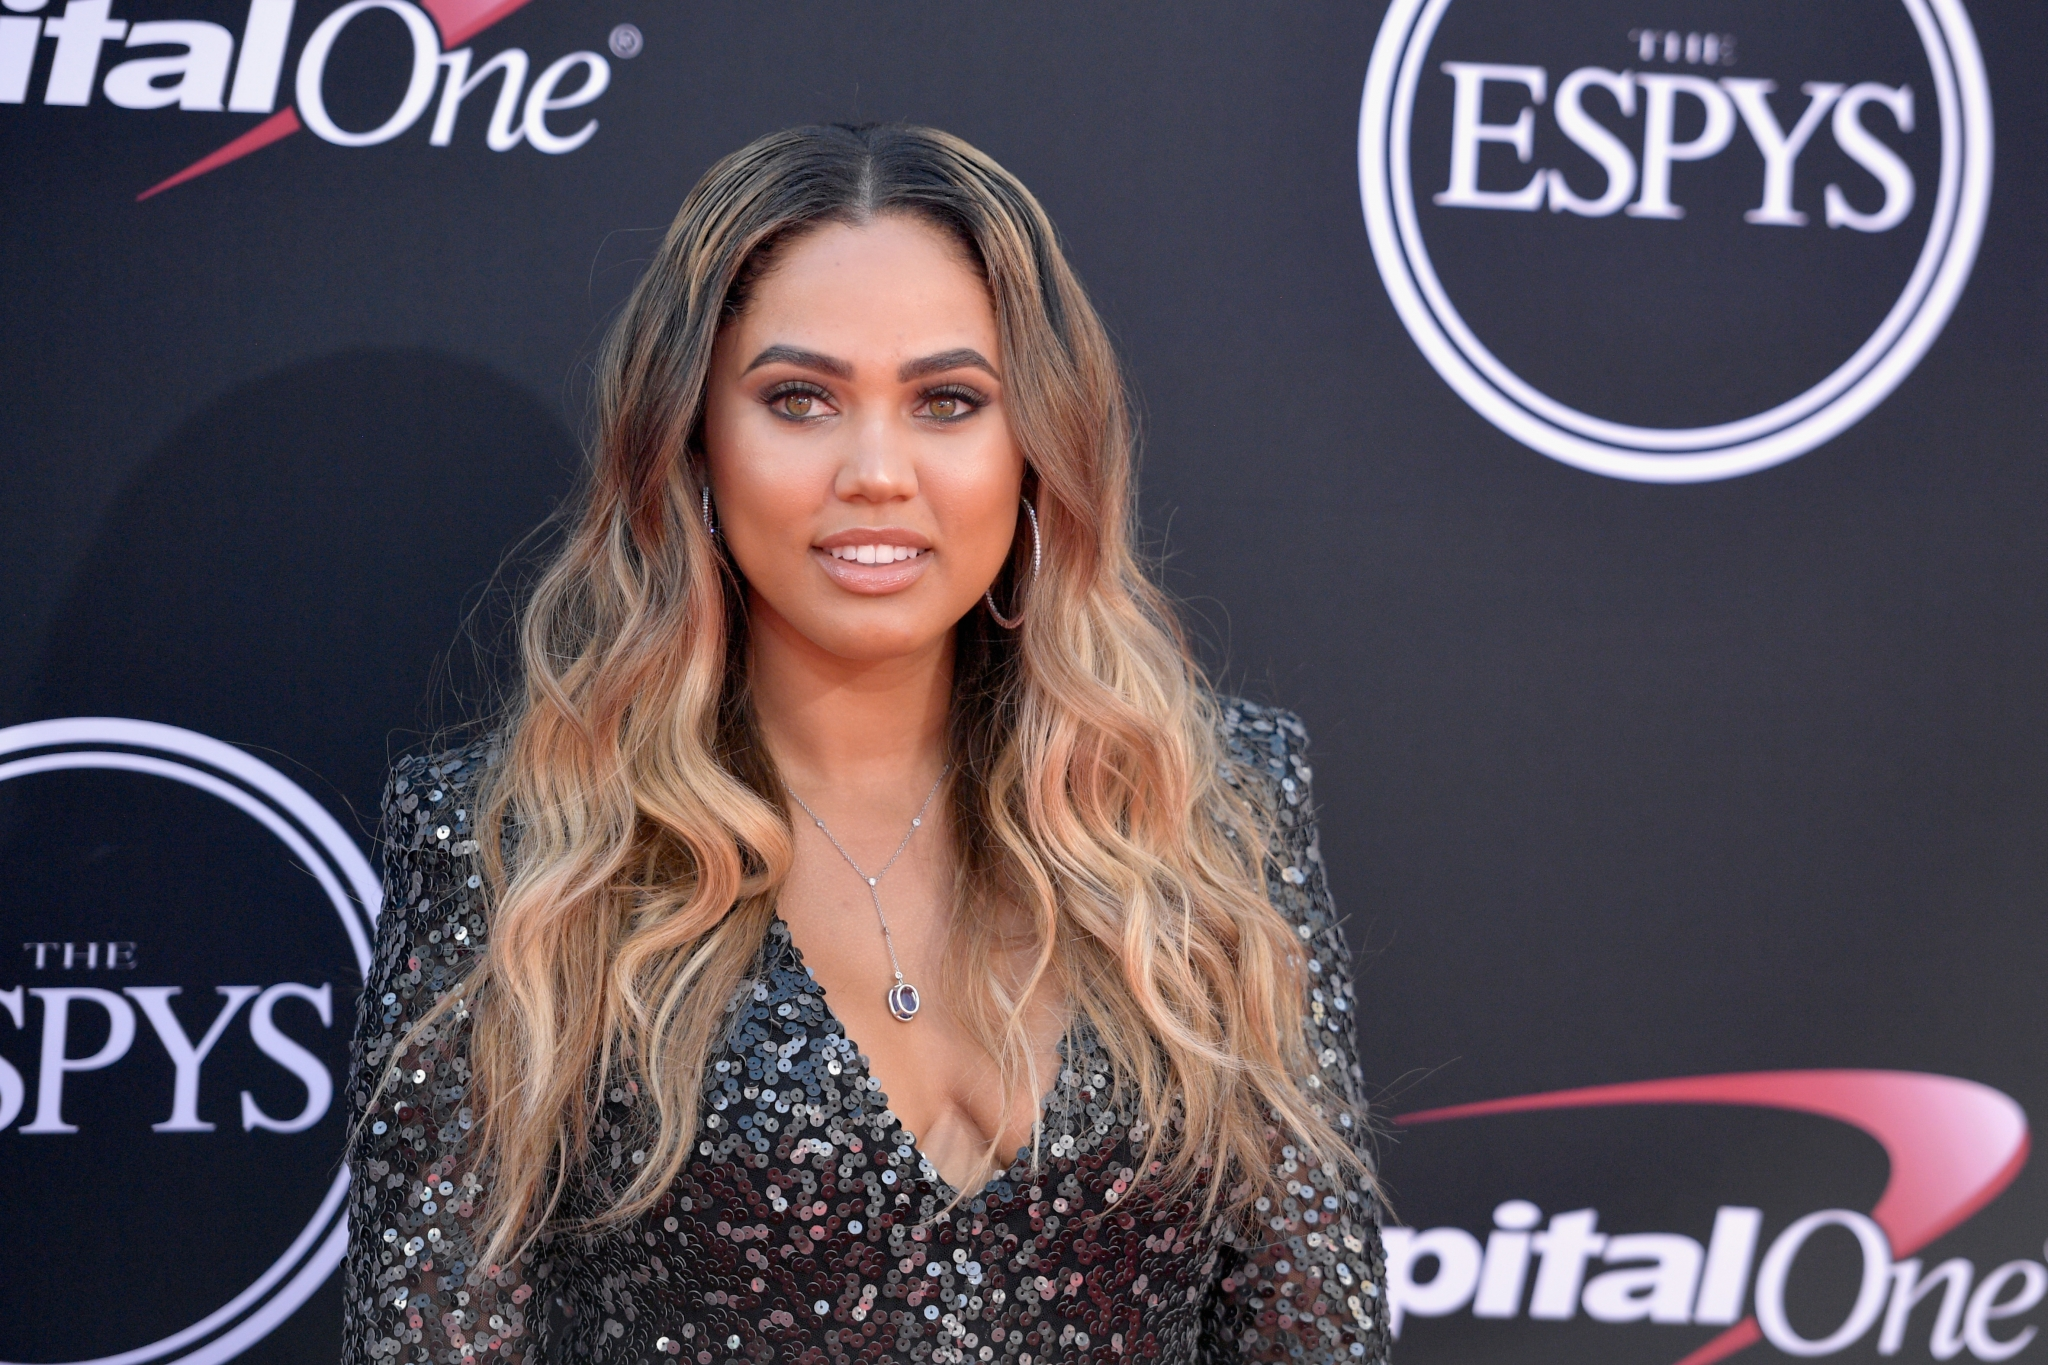 Ayesha Curry tapped as newest CoverGirl model - SFGate